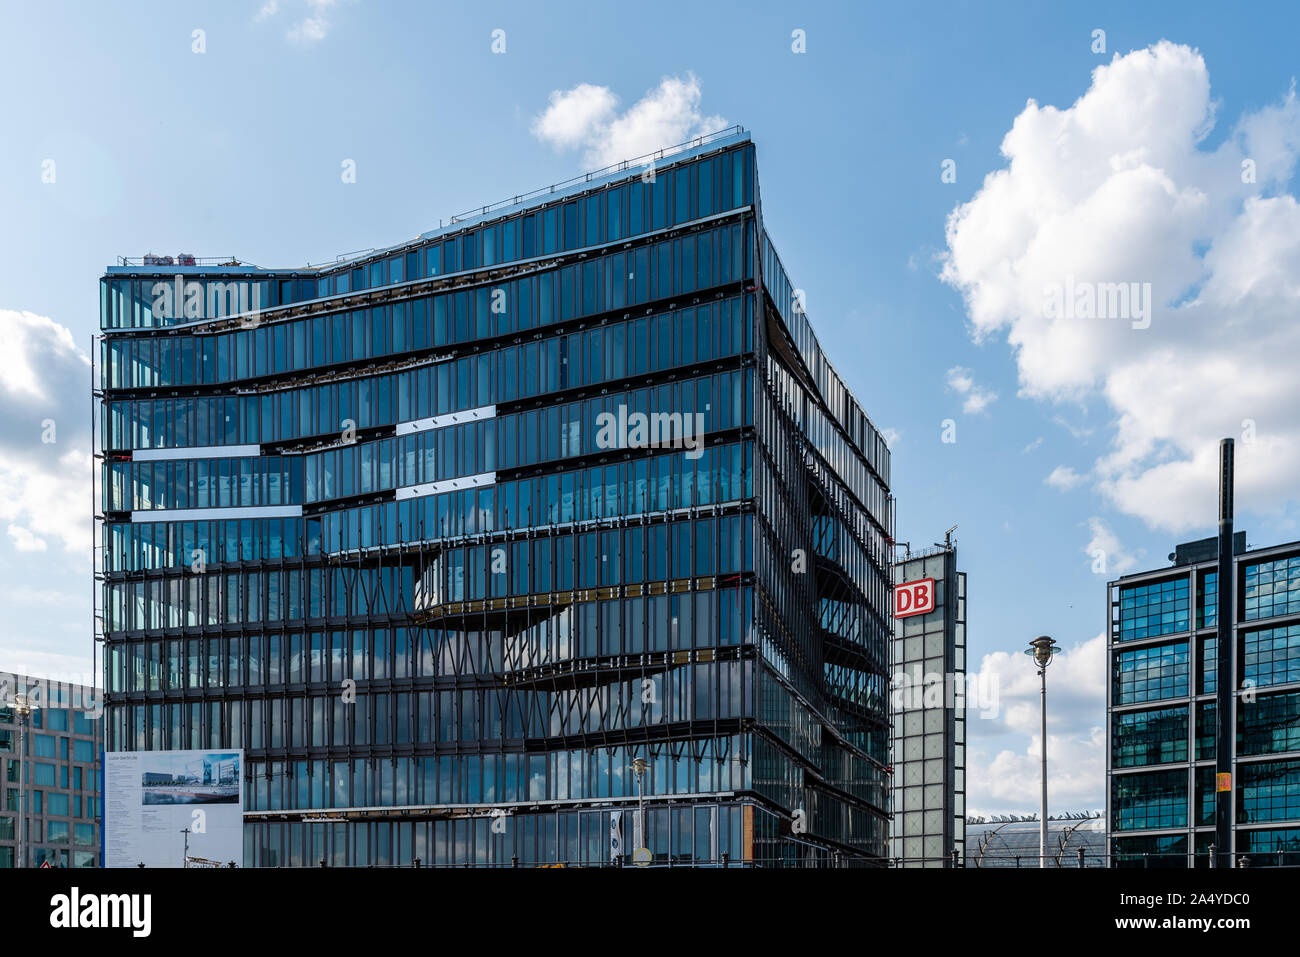 Berlin, Germany - July 27, 2019: Cube Berlin, a modern glass office building located on Washingtonplatz, besides central station and Spreebogen, on th Stock Photo